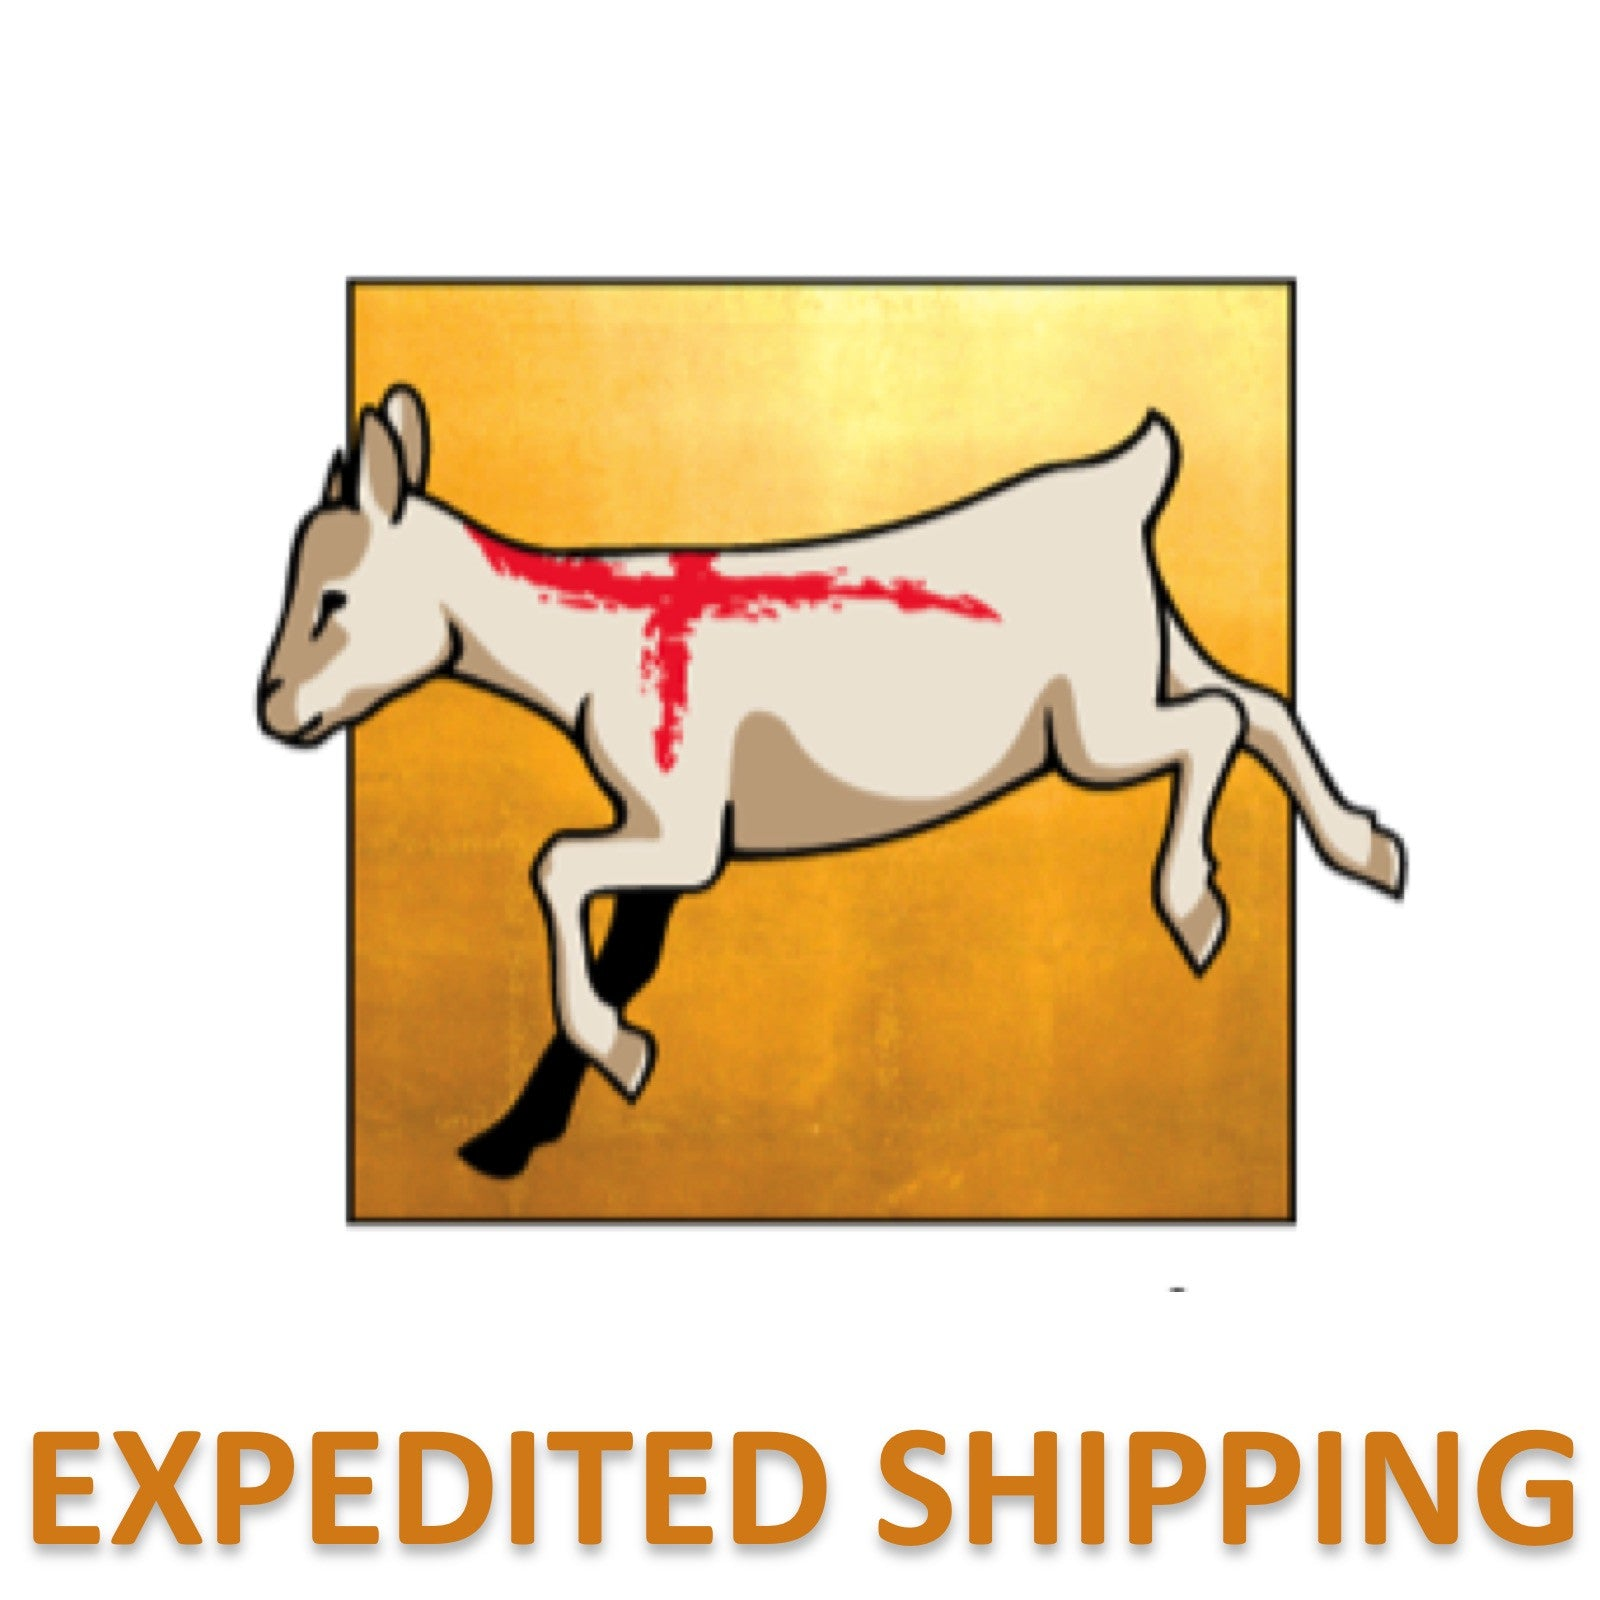 Scapegoat Studio Banner - expedited